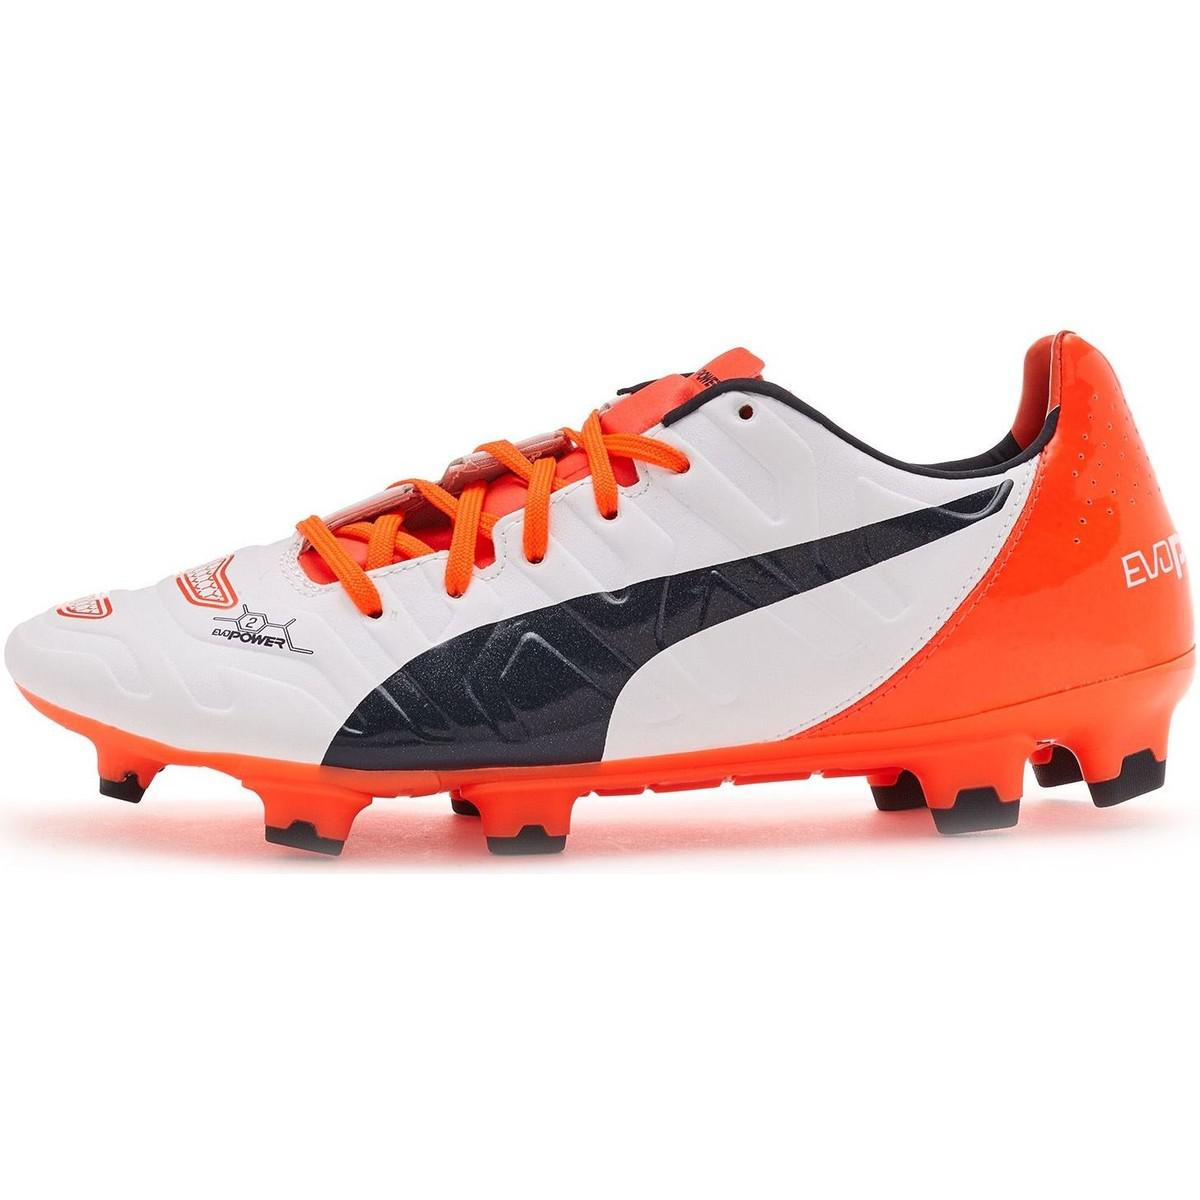 Latest Puma Evopower 1.2 Football Boots Soccer Cleats In White & Orange 103 White Sports Shoes for Men On Sale